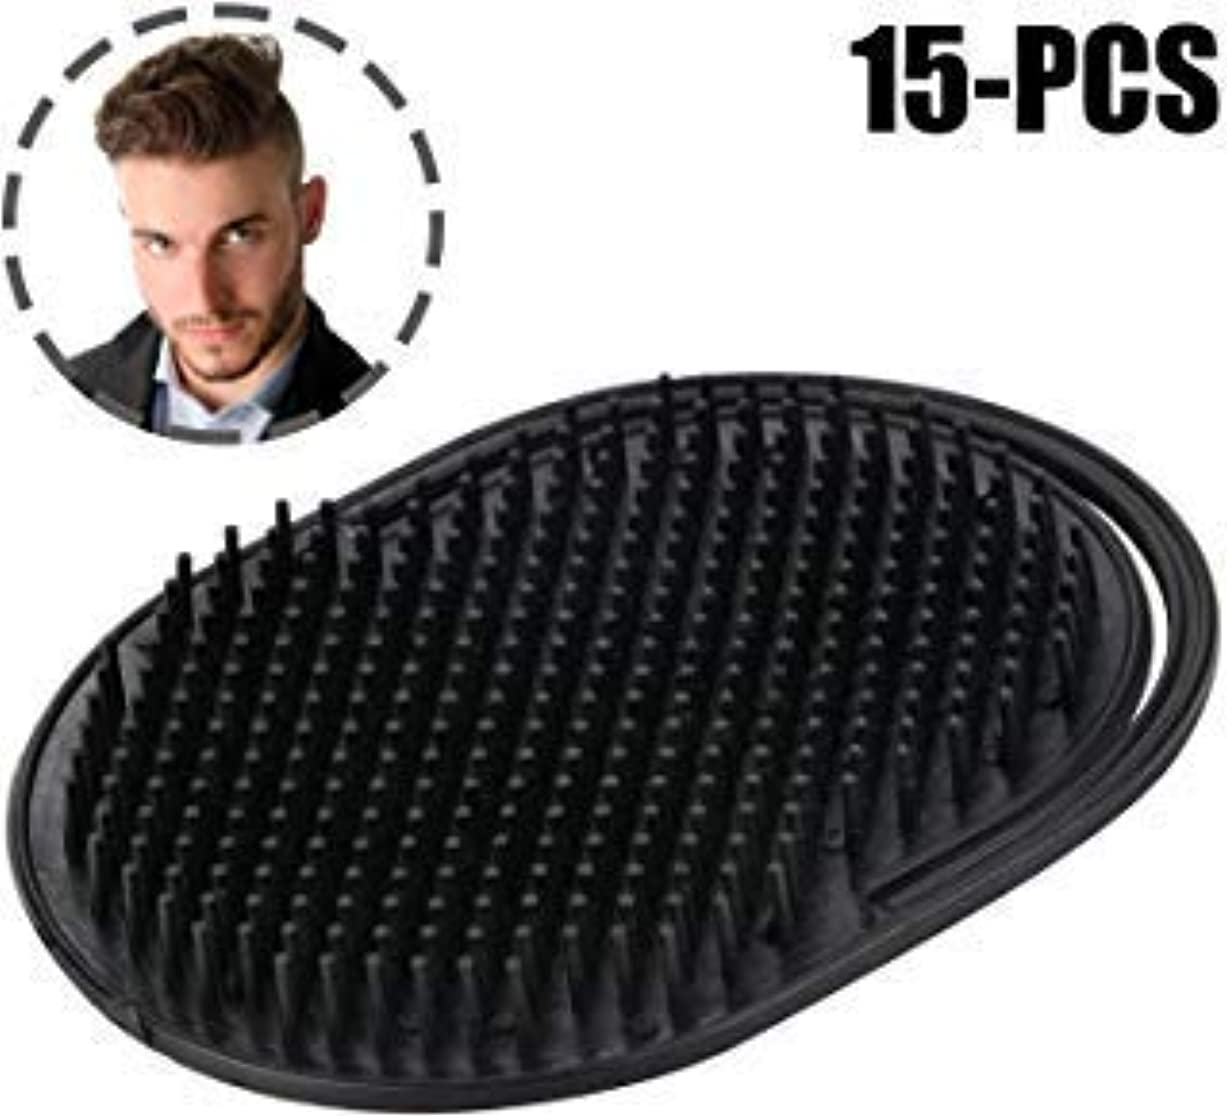 旅行者コンペスチュワードKapmore 15 PCS Palm Comb Pocket Comb Creative Scalp Massage Brush Portable Shampoo Comb for Men [並行輸入品]